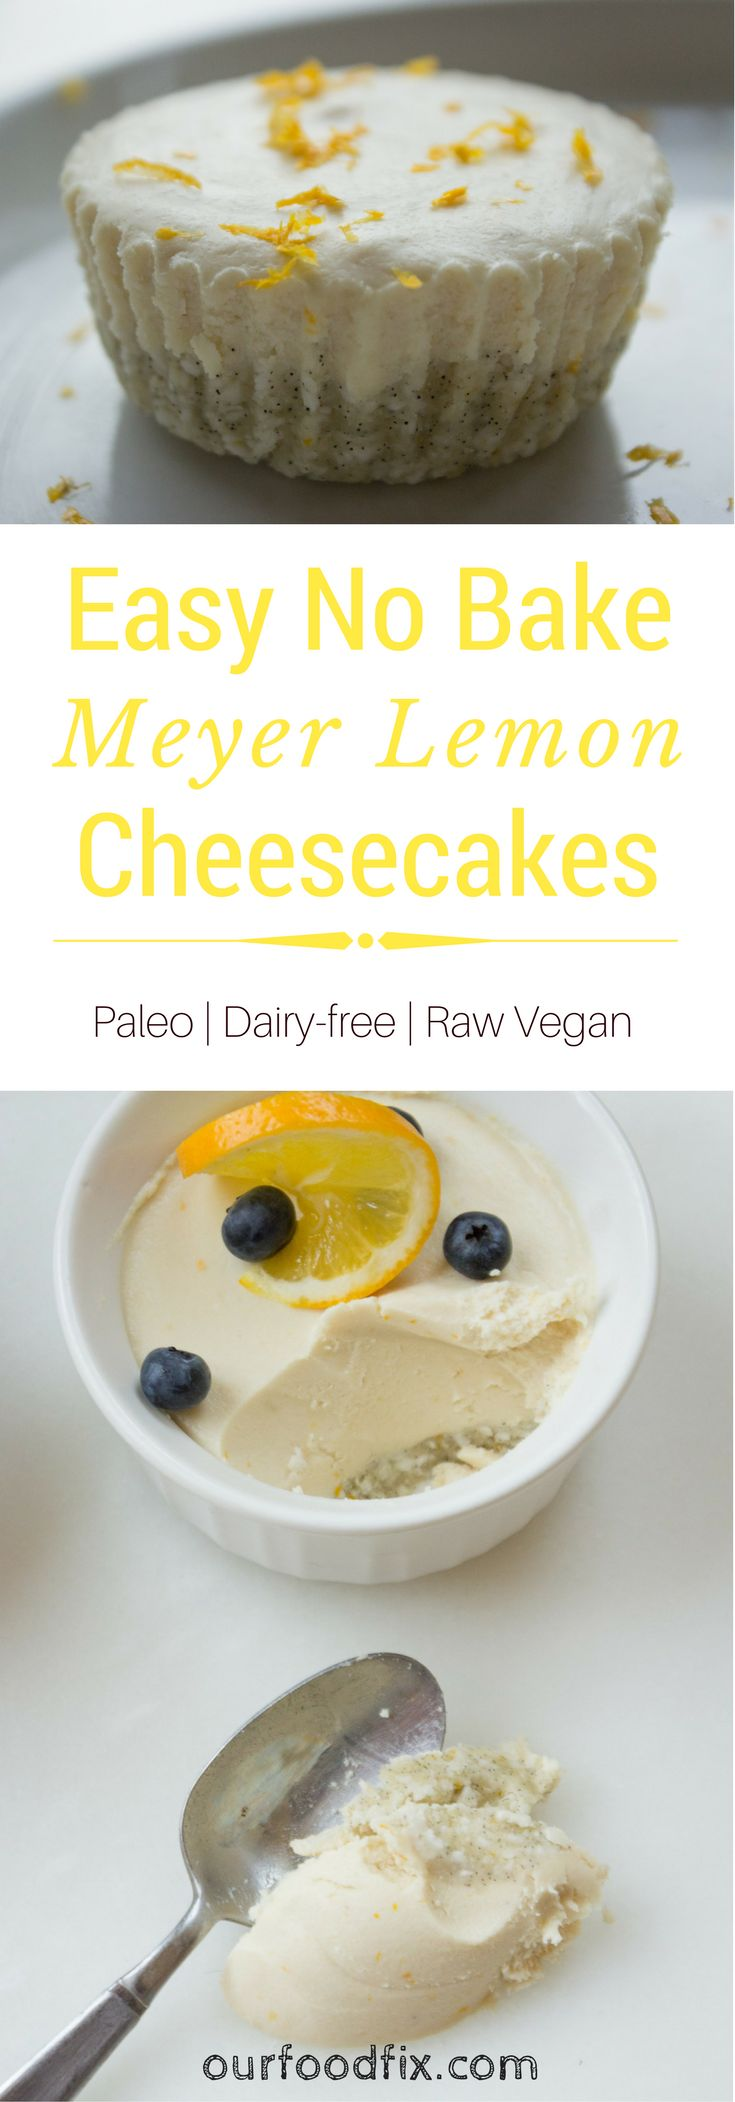 A creamy, light, sweet-tart filling resembles cheesecake so much, no one will have a clue it's Vegan. Free of refined sugar and full of healthy fats to give you energy. Paleo recipes | Vegan recipes | Raw recipes | Paleo desserts | Paleo snacks | Vegan desserts | Meyer lemon | Sweet treats | Spring recipes | Summer recipes | Dairy free recipes | Gluten free recipes | Low carb | Healthy desserts | Cashew cheesecake | Refined sugar free